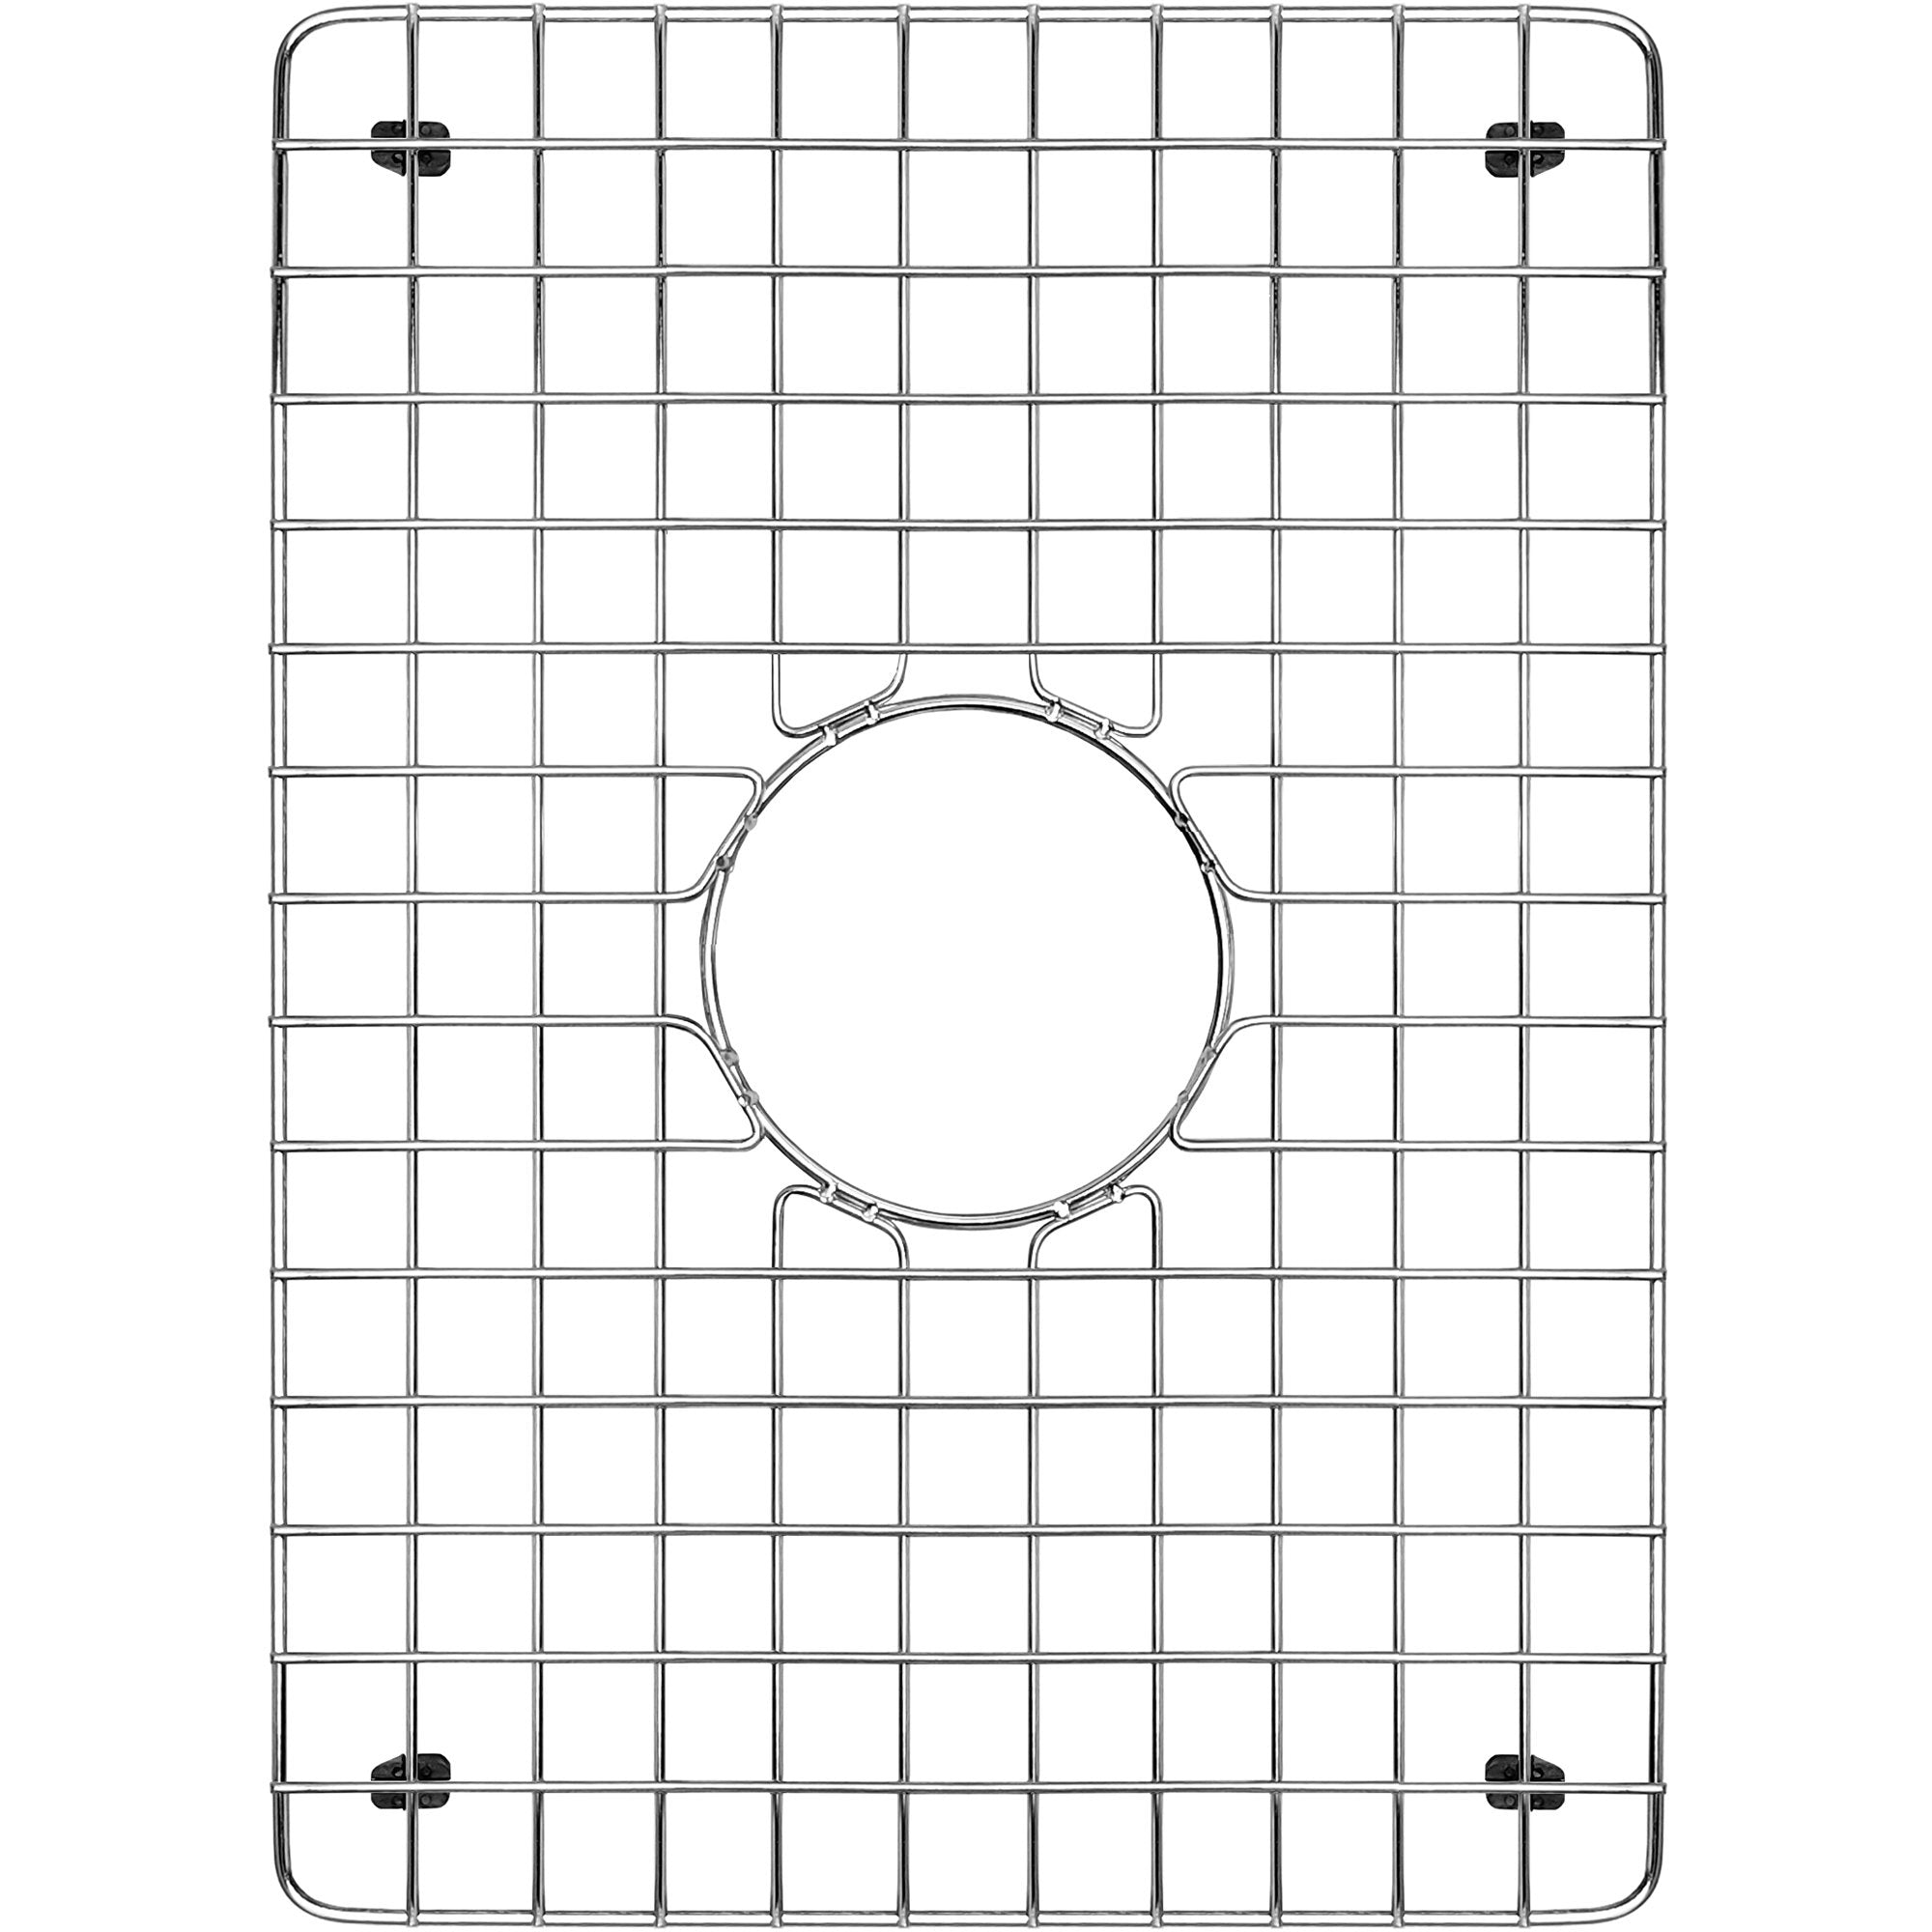 Stainless Steel Kitchen Sink Grid For Noah's Sink Model WHNCMAP3621EQ